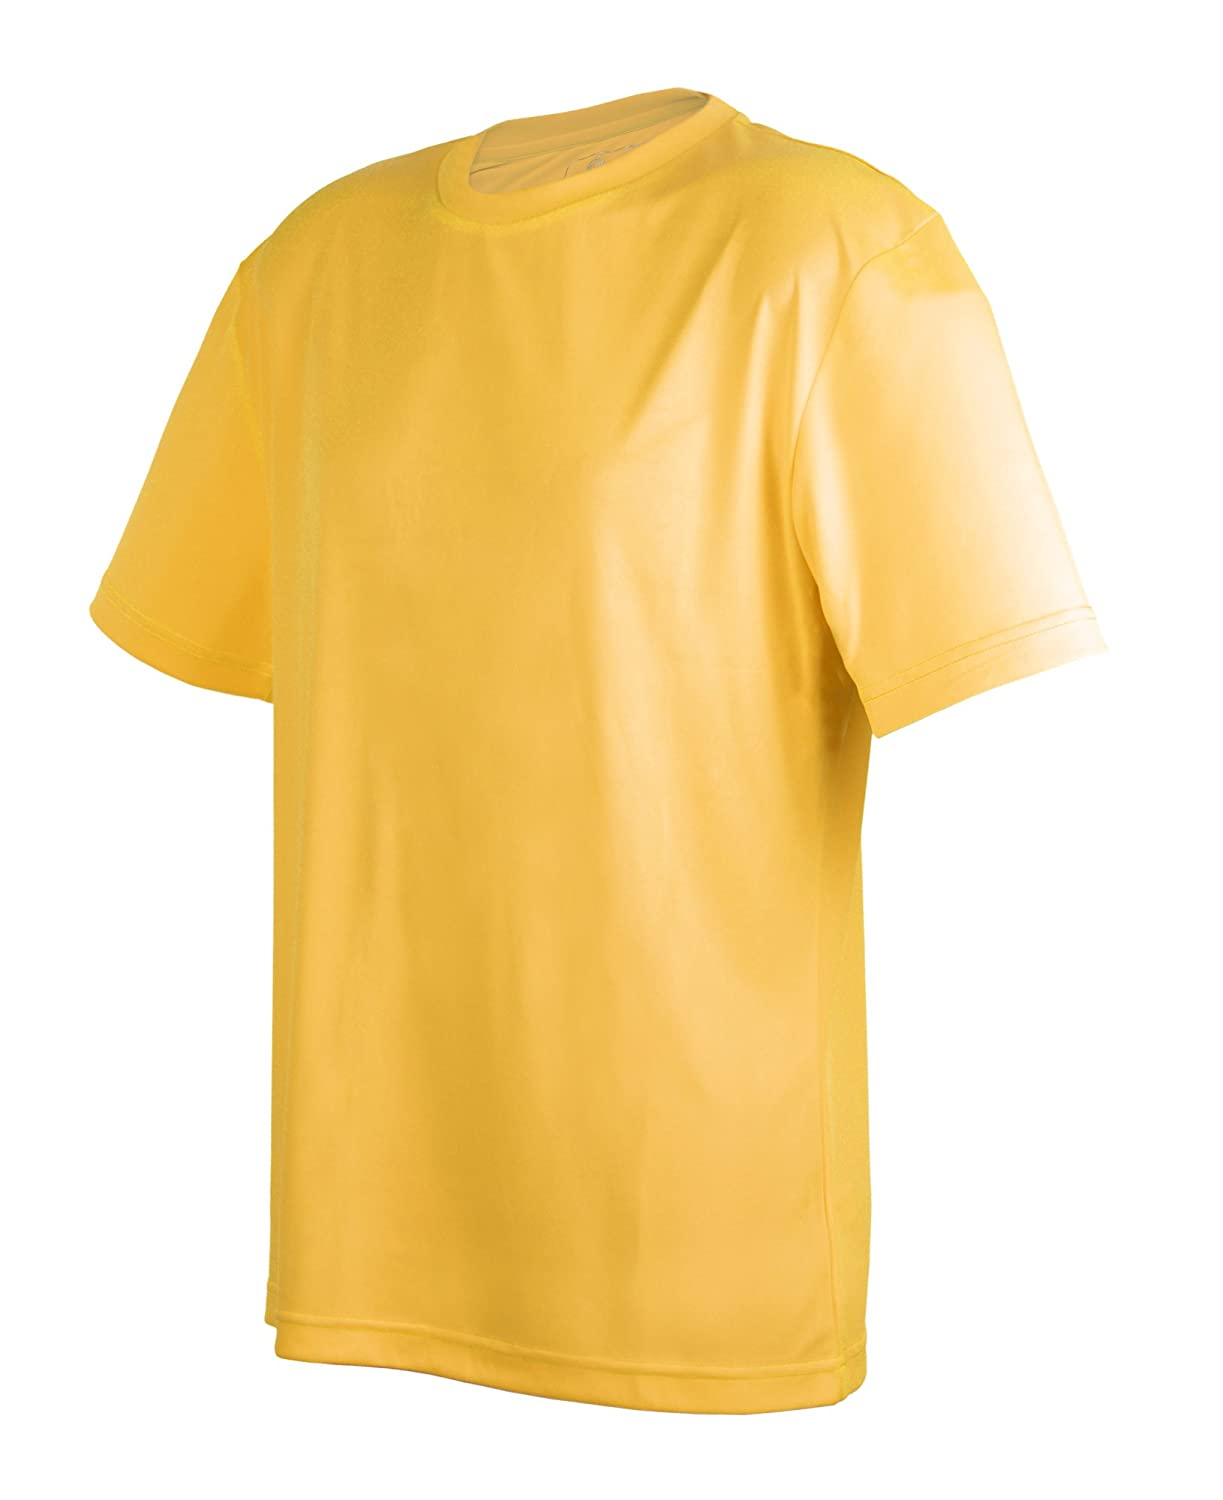 7e7f36f44579 ... WICKING PERFORMANCE - Mato   Hash ensures that you will stay dry and  cool through the most intense workouts with these moisture wicking workout  shirts.